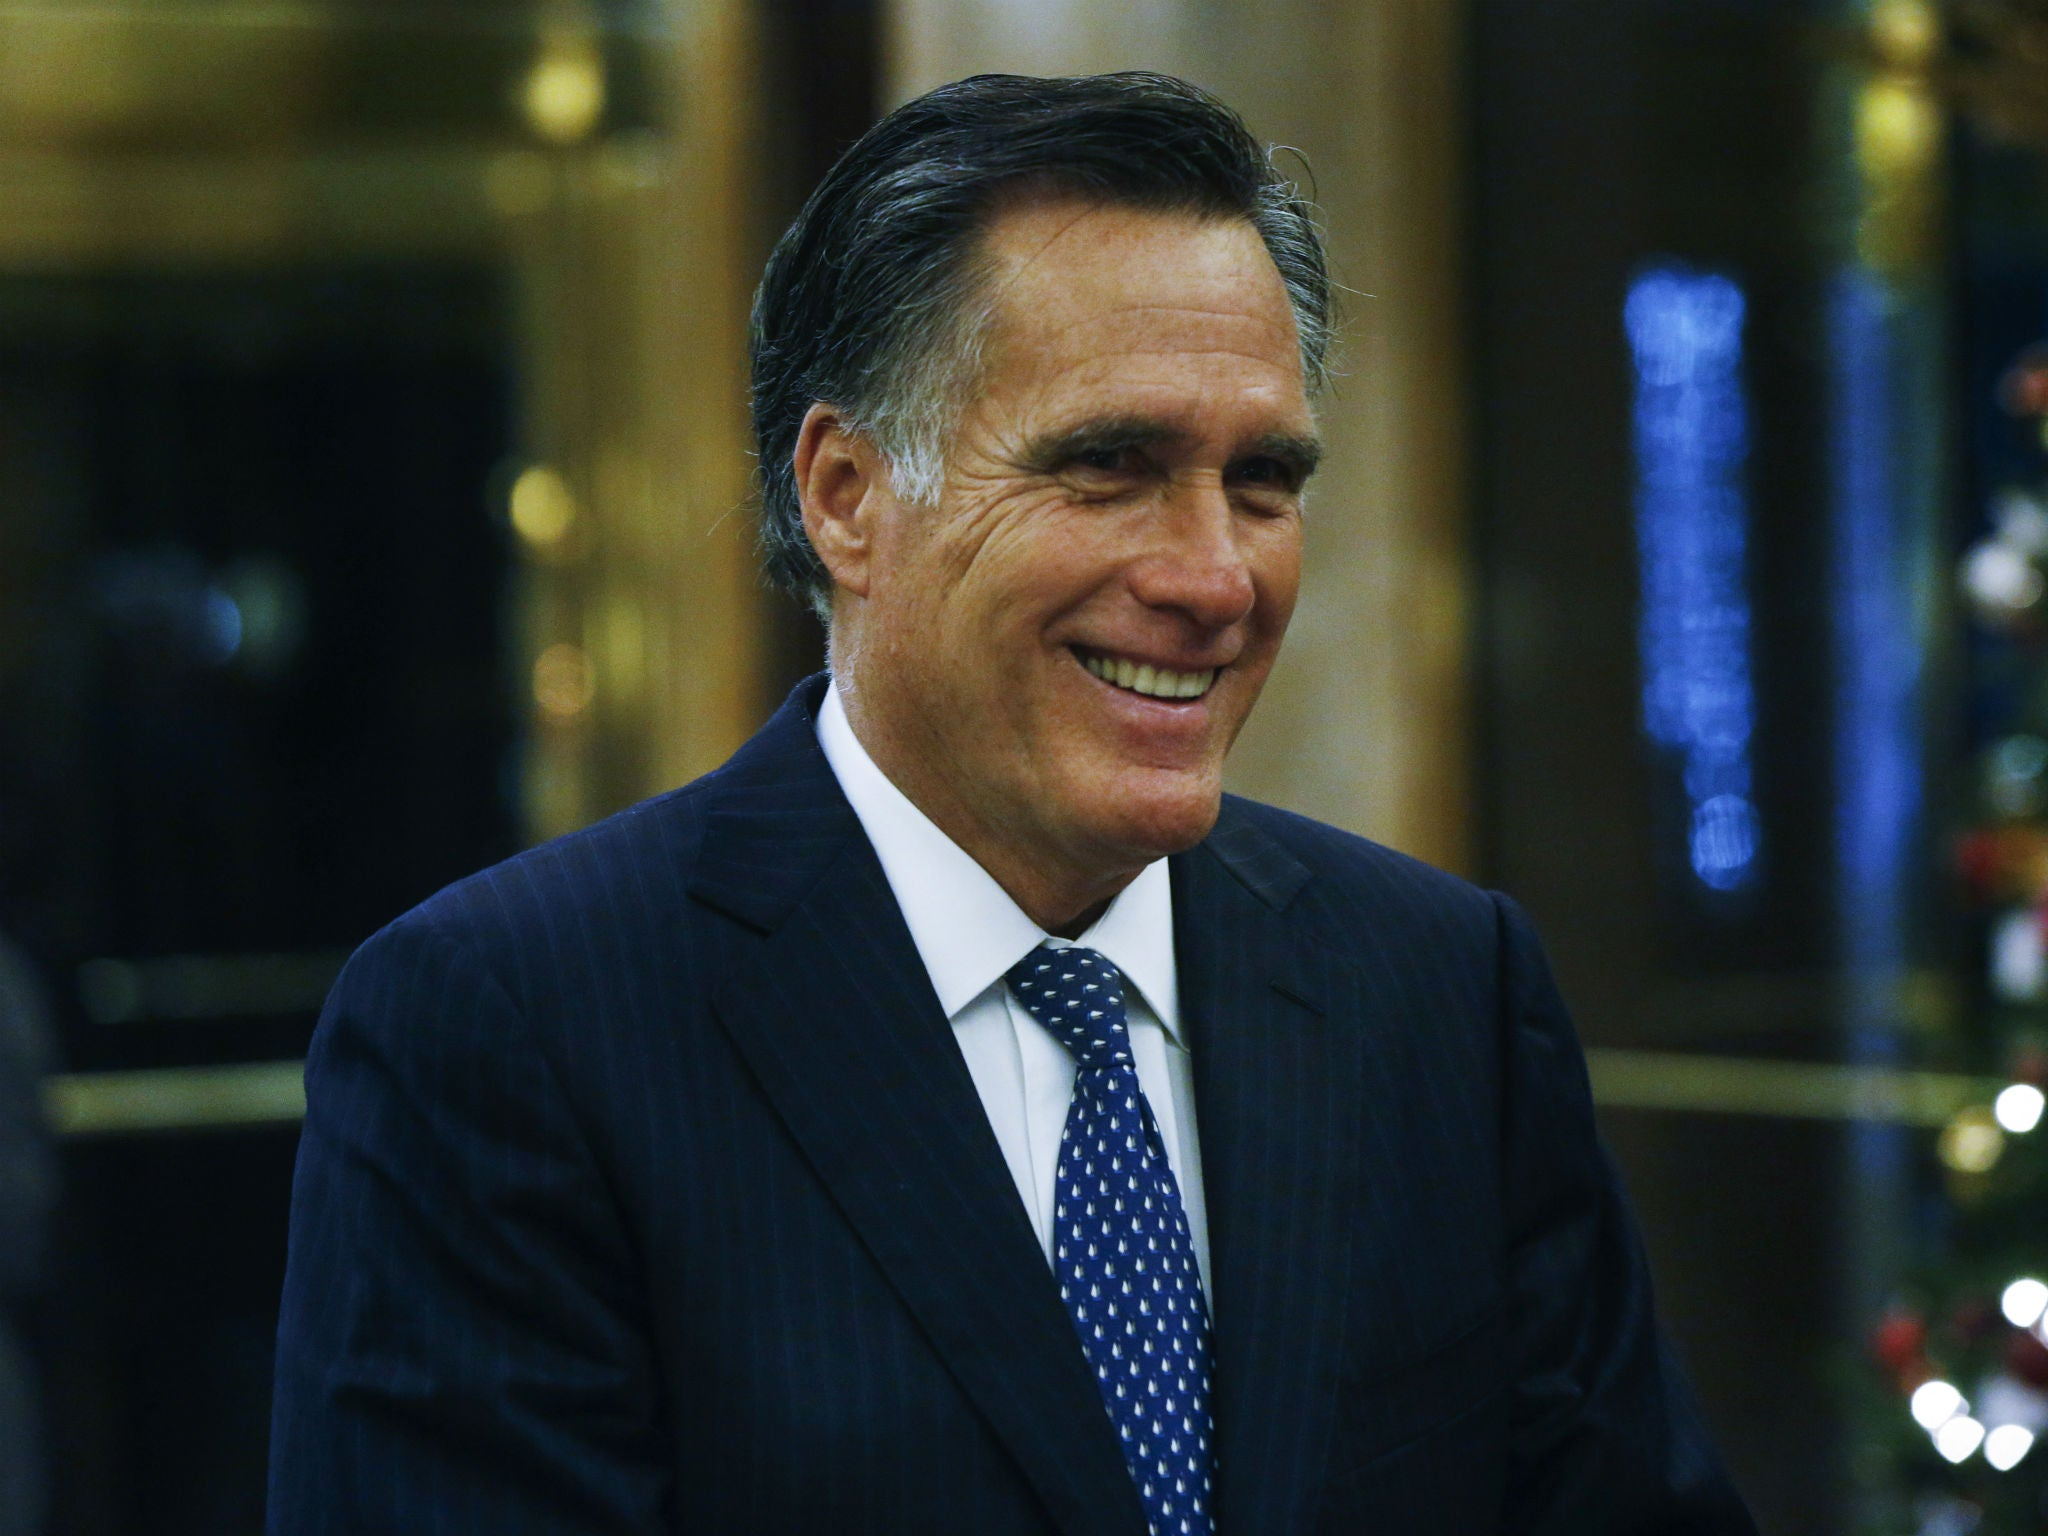 Mitt Romney blasts Donald Trump's comments as 'antithetical to American values'